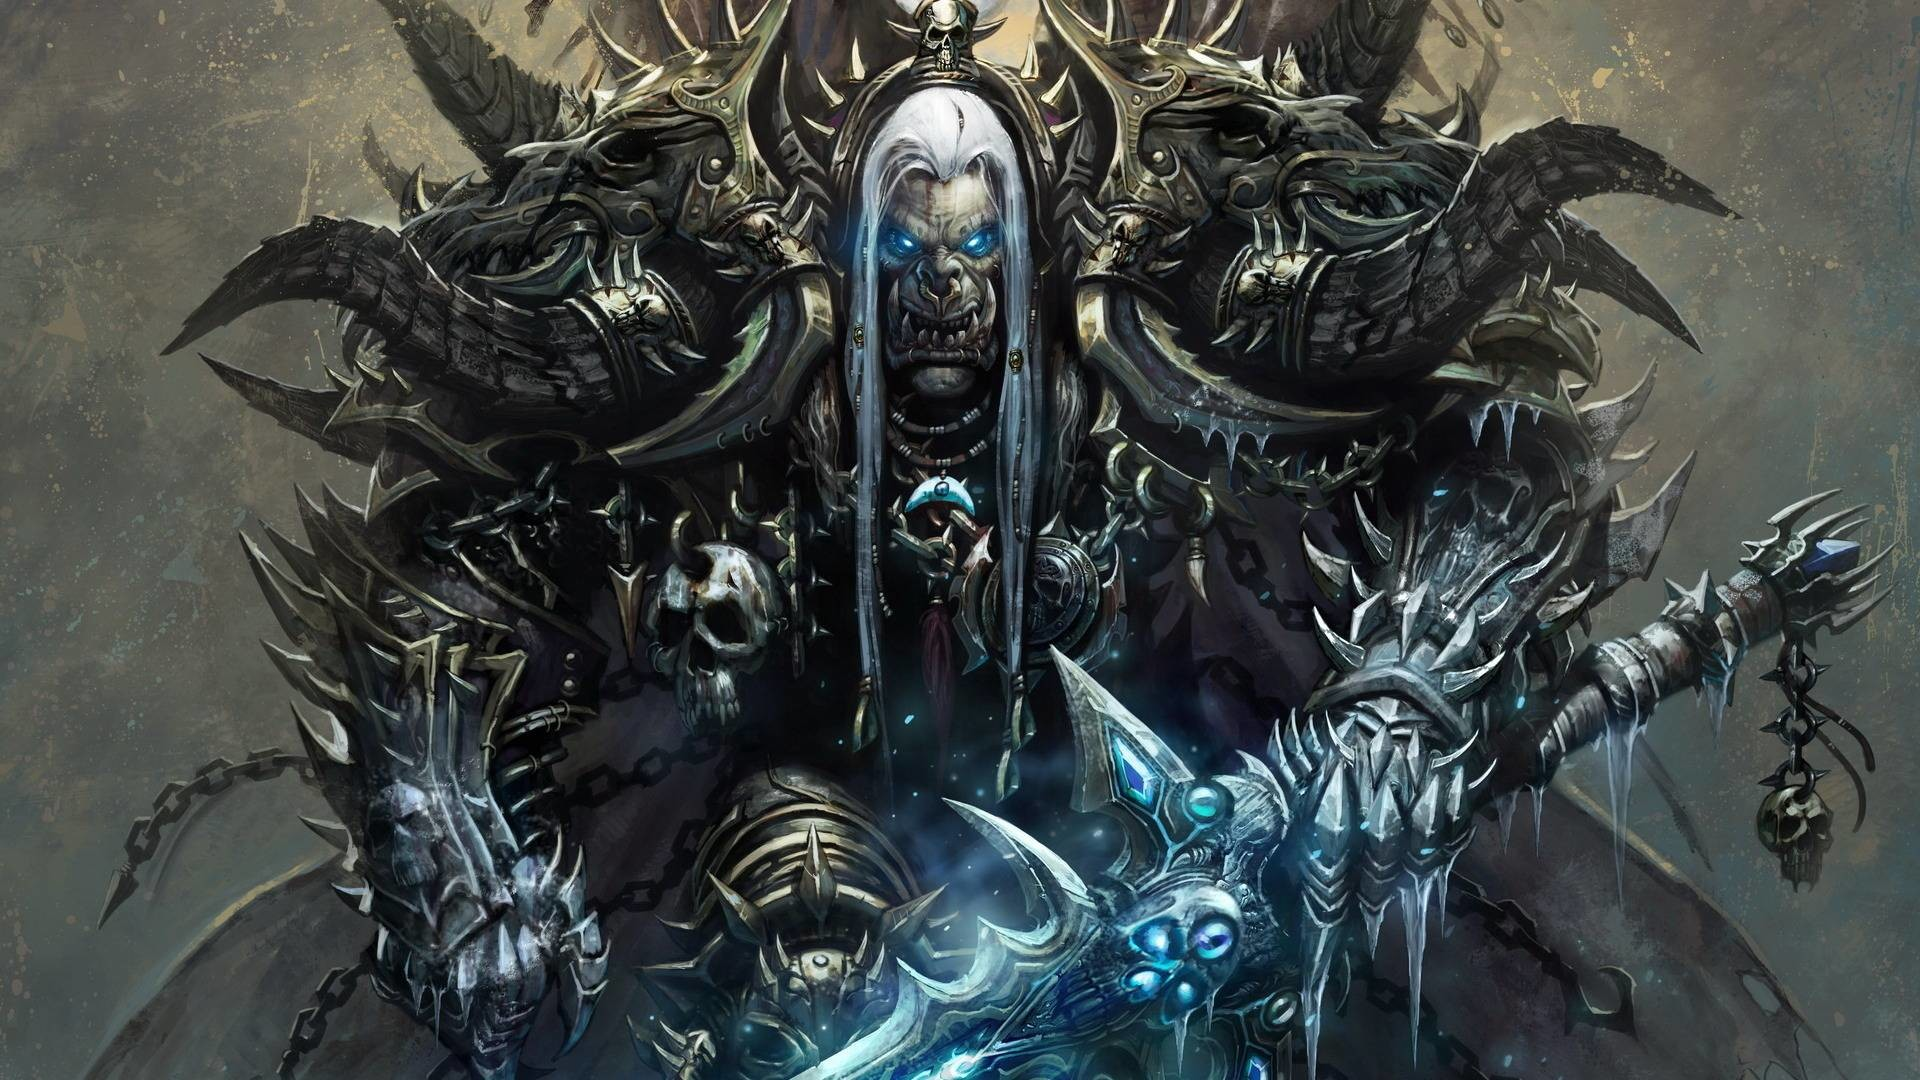 1920x1080 World Of Warcraft Warlords Of Draenor HD Wallpapers